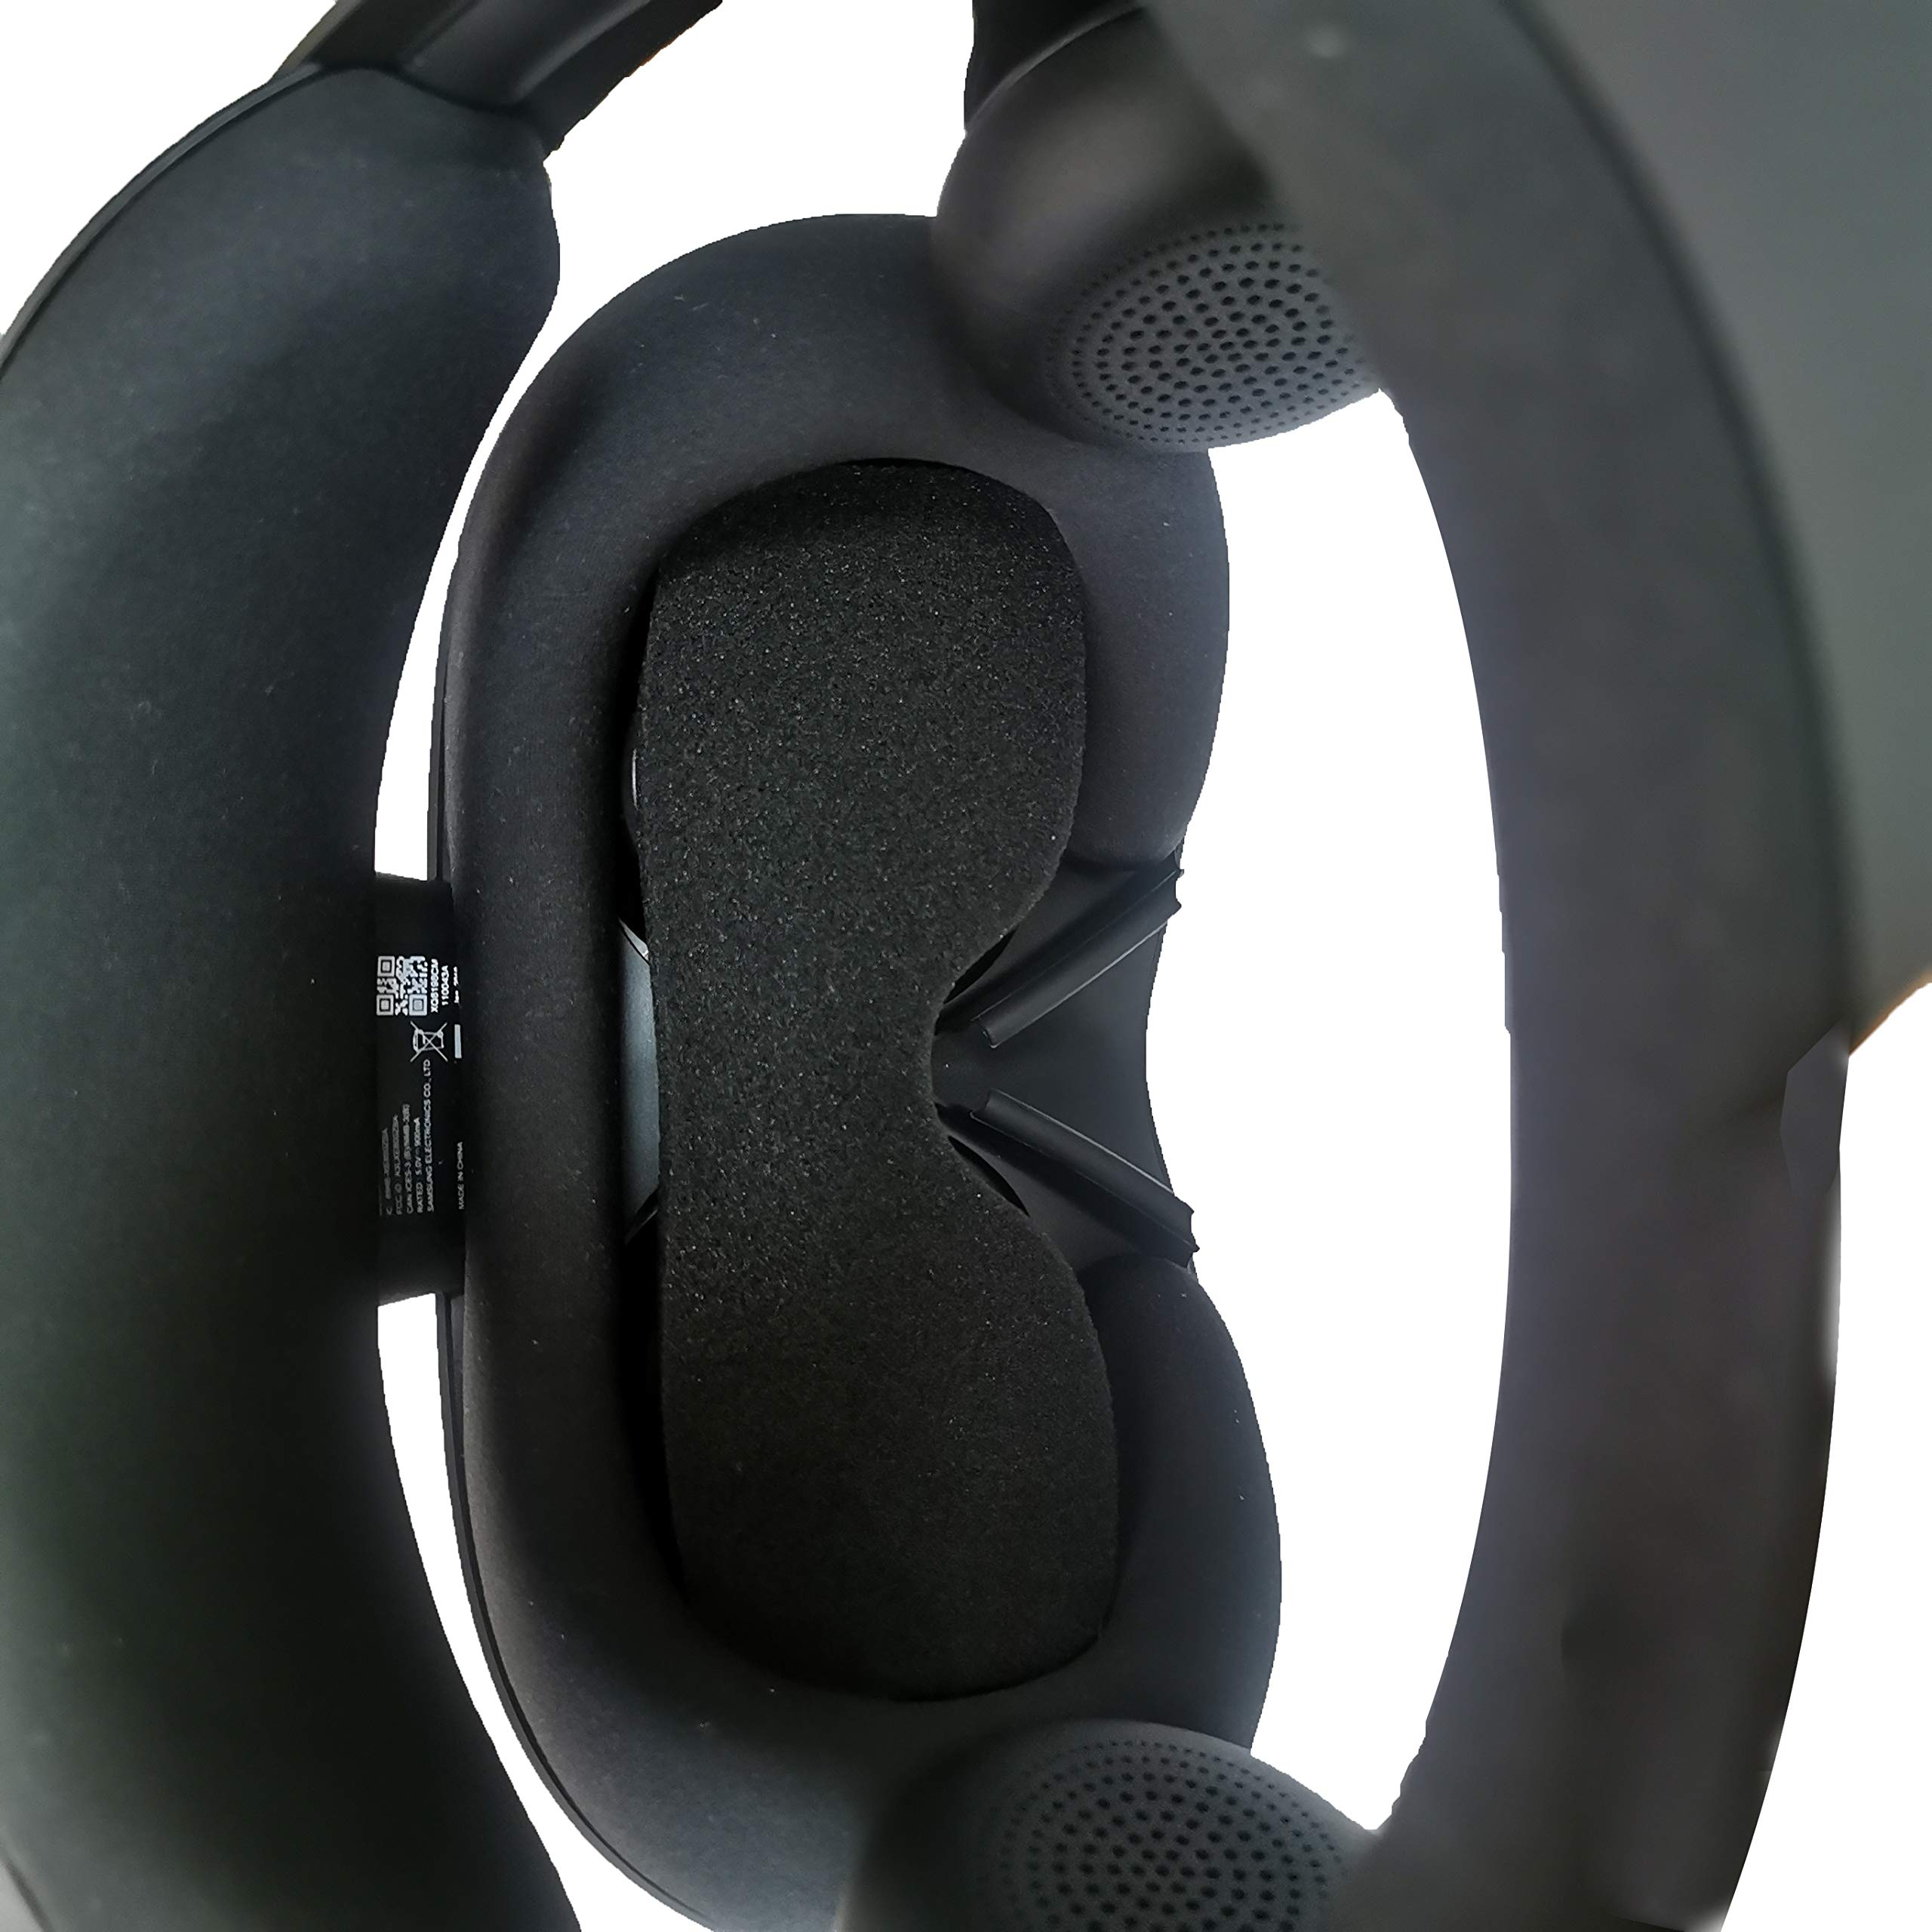 Lens Protector Foam Pad for Samsung HMD Odyssey+ Headset,Avoiding Screen Scratches